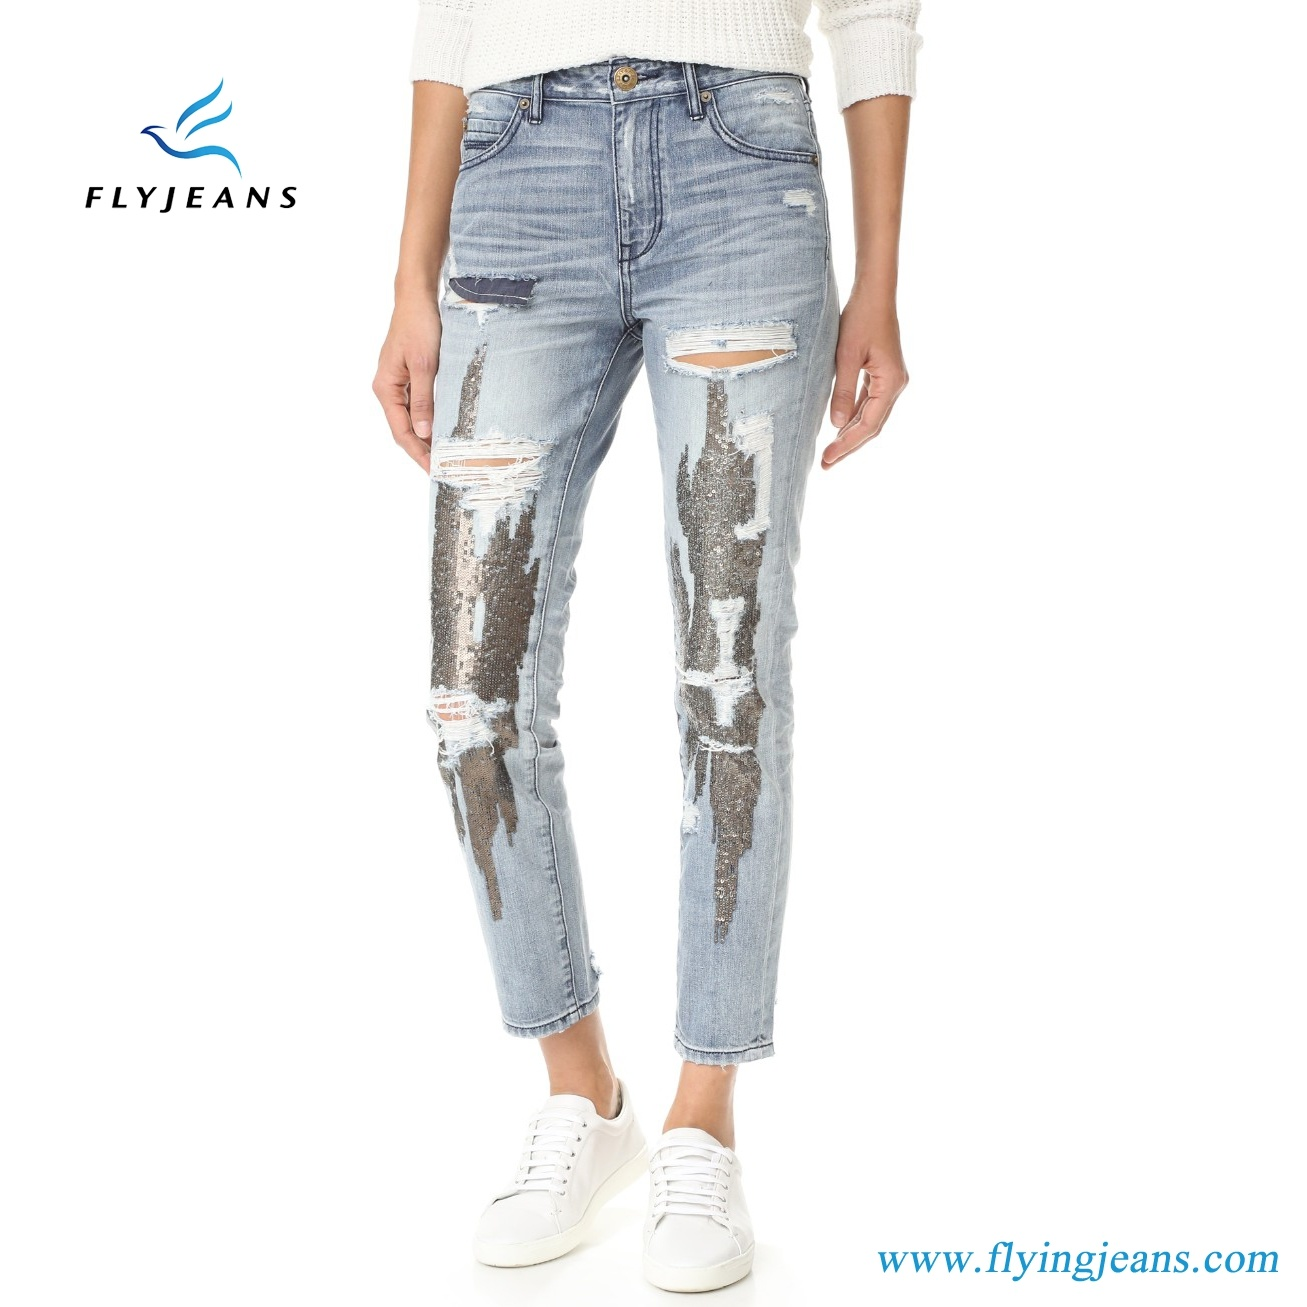 China Holes And Sequin Embroidery Slim Fit Women Denim Jeans Pants E P 335 China Woman Jeans And Denim Pants Price Savings not applicable to taxes. china holes and sequin embroidery slim